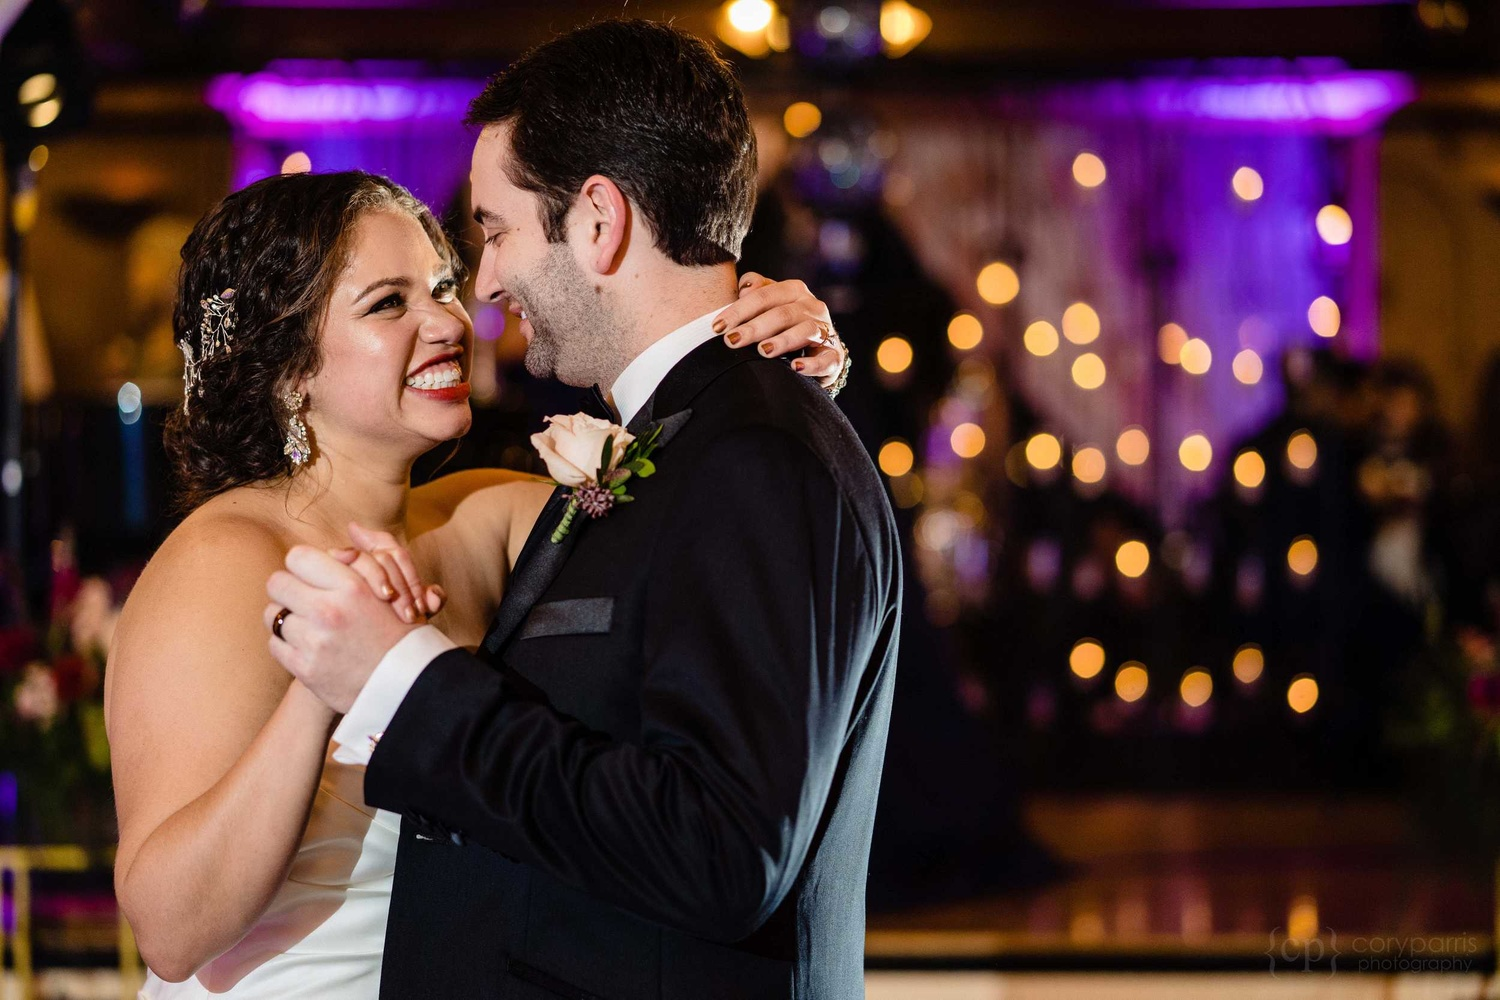 Bride and groom first dance at their Seattle wedding